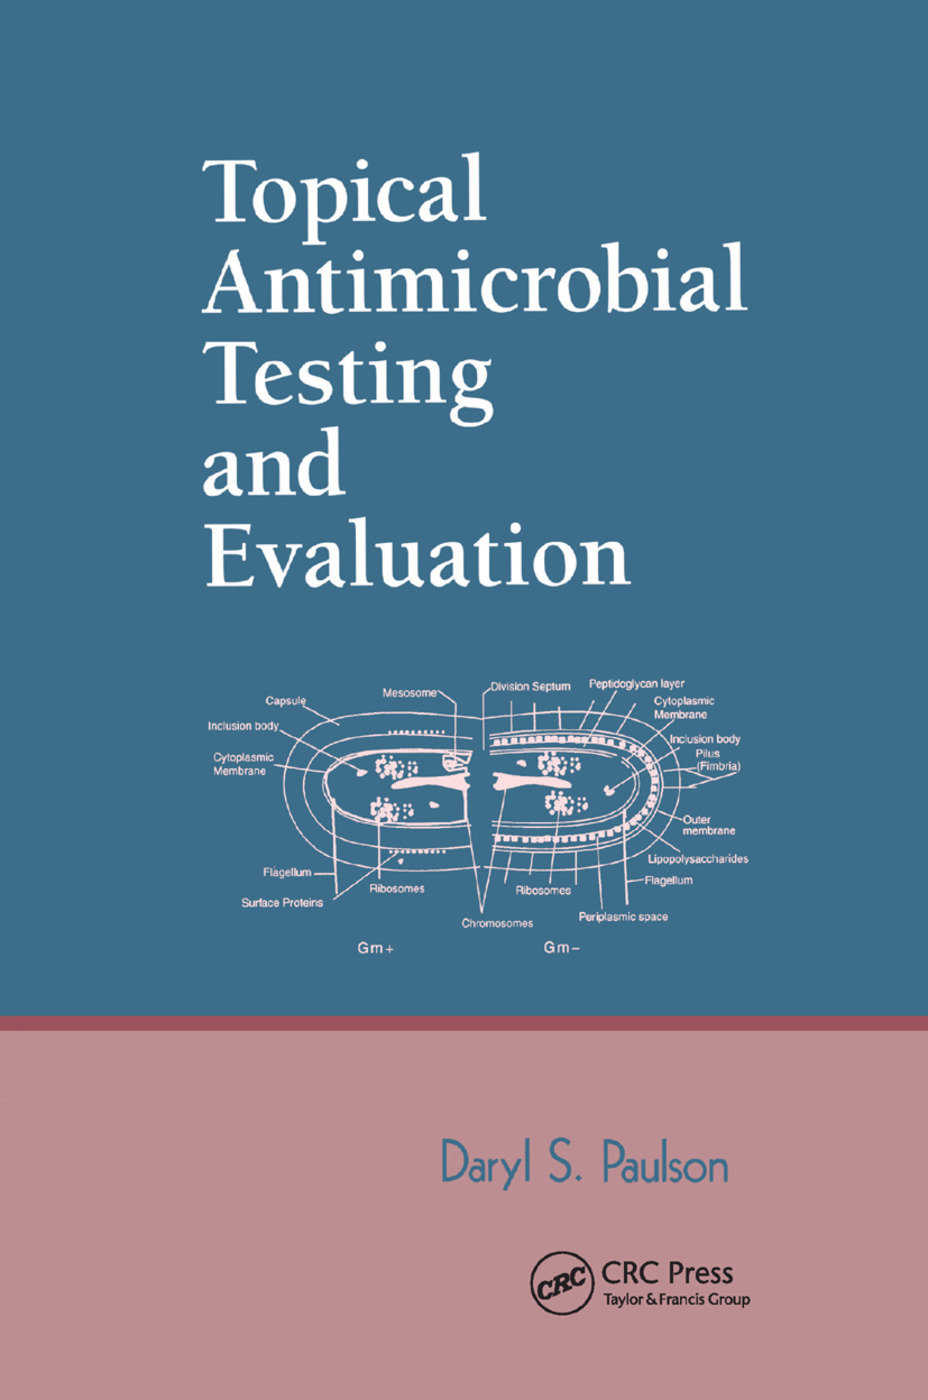 Topical Antimicrobial Testing and Evaluation